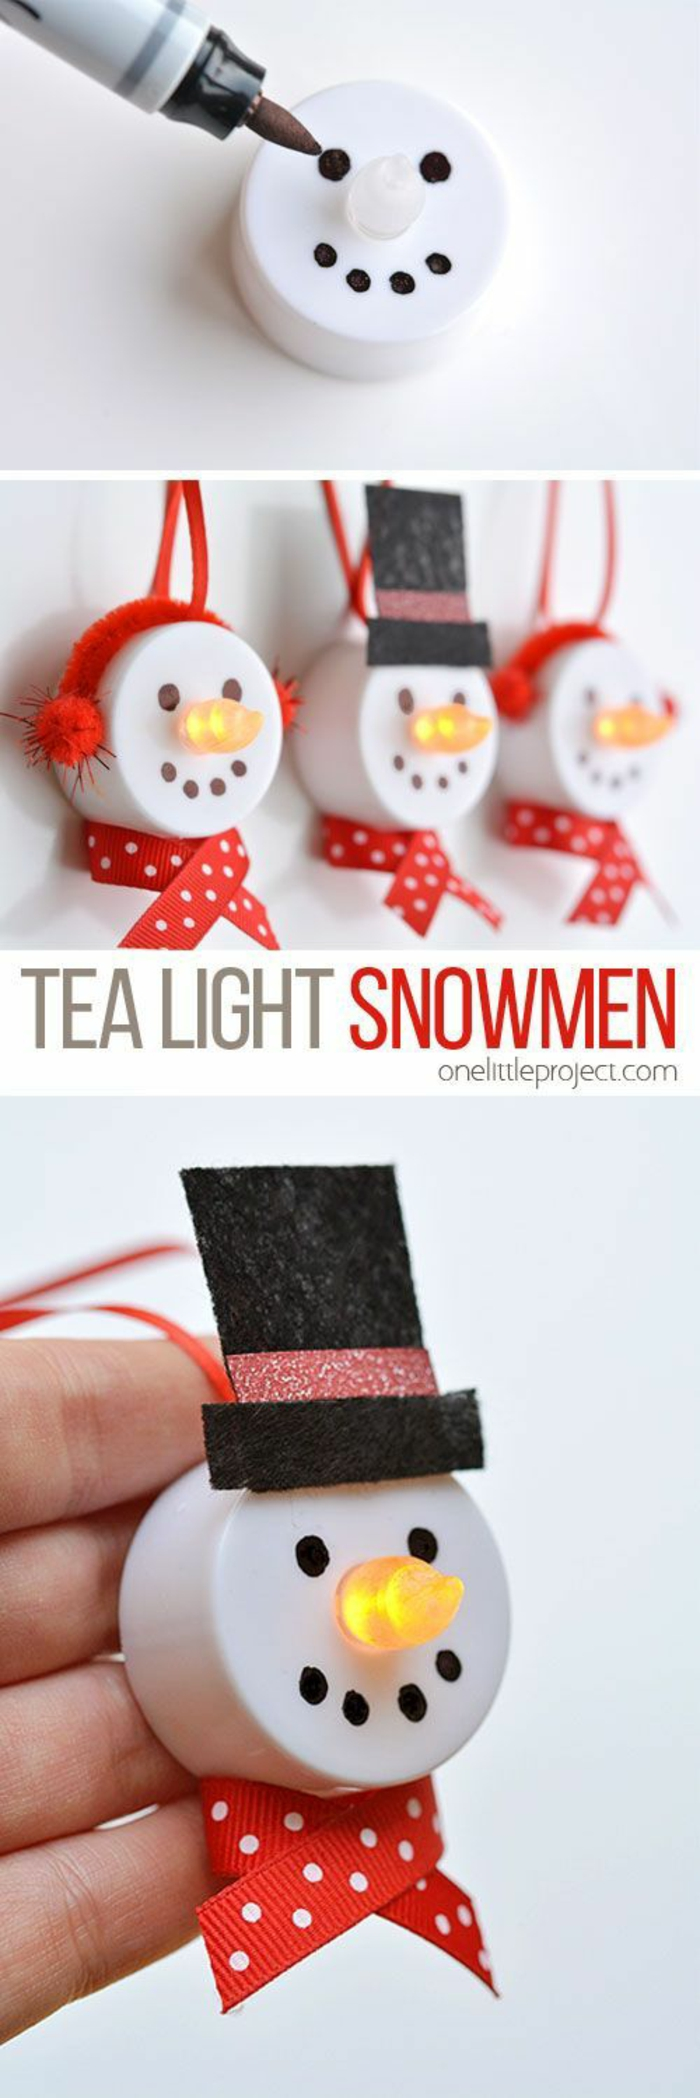 marker near a white electric tealight with a simple snowman face drawn on it, three lights made to look like snowmen with glowing noses, red earmuffs and scarves and a top hat, little red strings, hand holding one of the painted lights